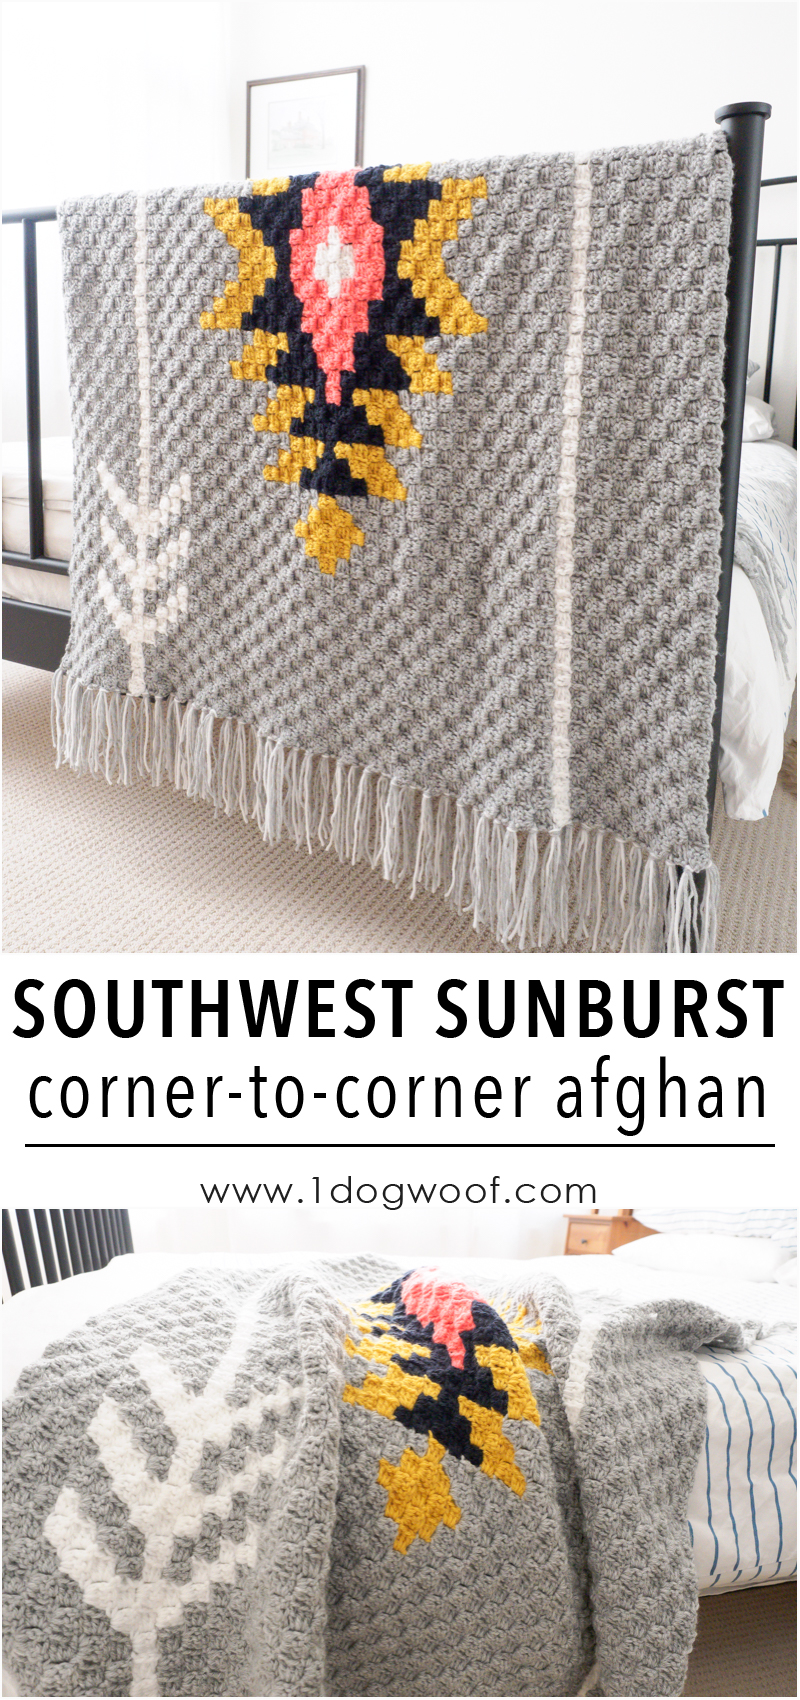 Southwest Sunburst c2c crochet afghan, using Lion Brand Vanna's Choice yarn. Free graph and instructions included! www.1dogwoof.com